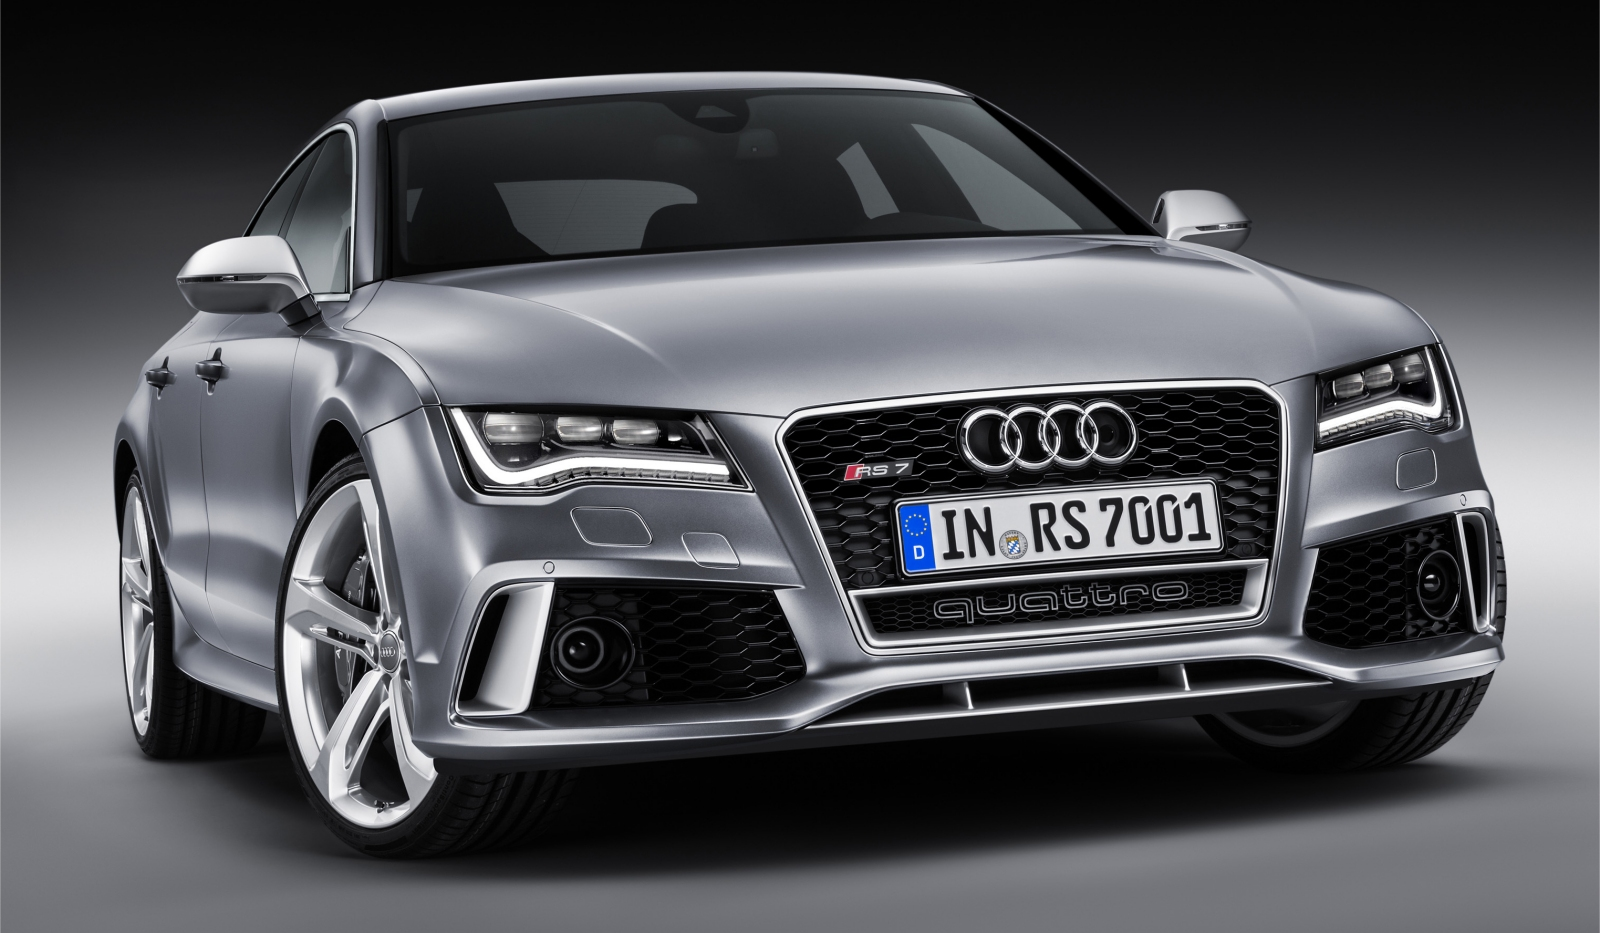 Car Wallpaper For The Week 2014 Audi Rs7 Sportback